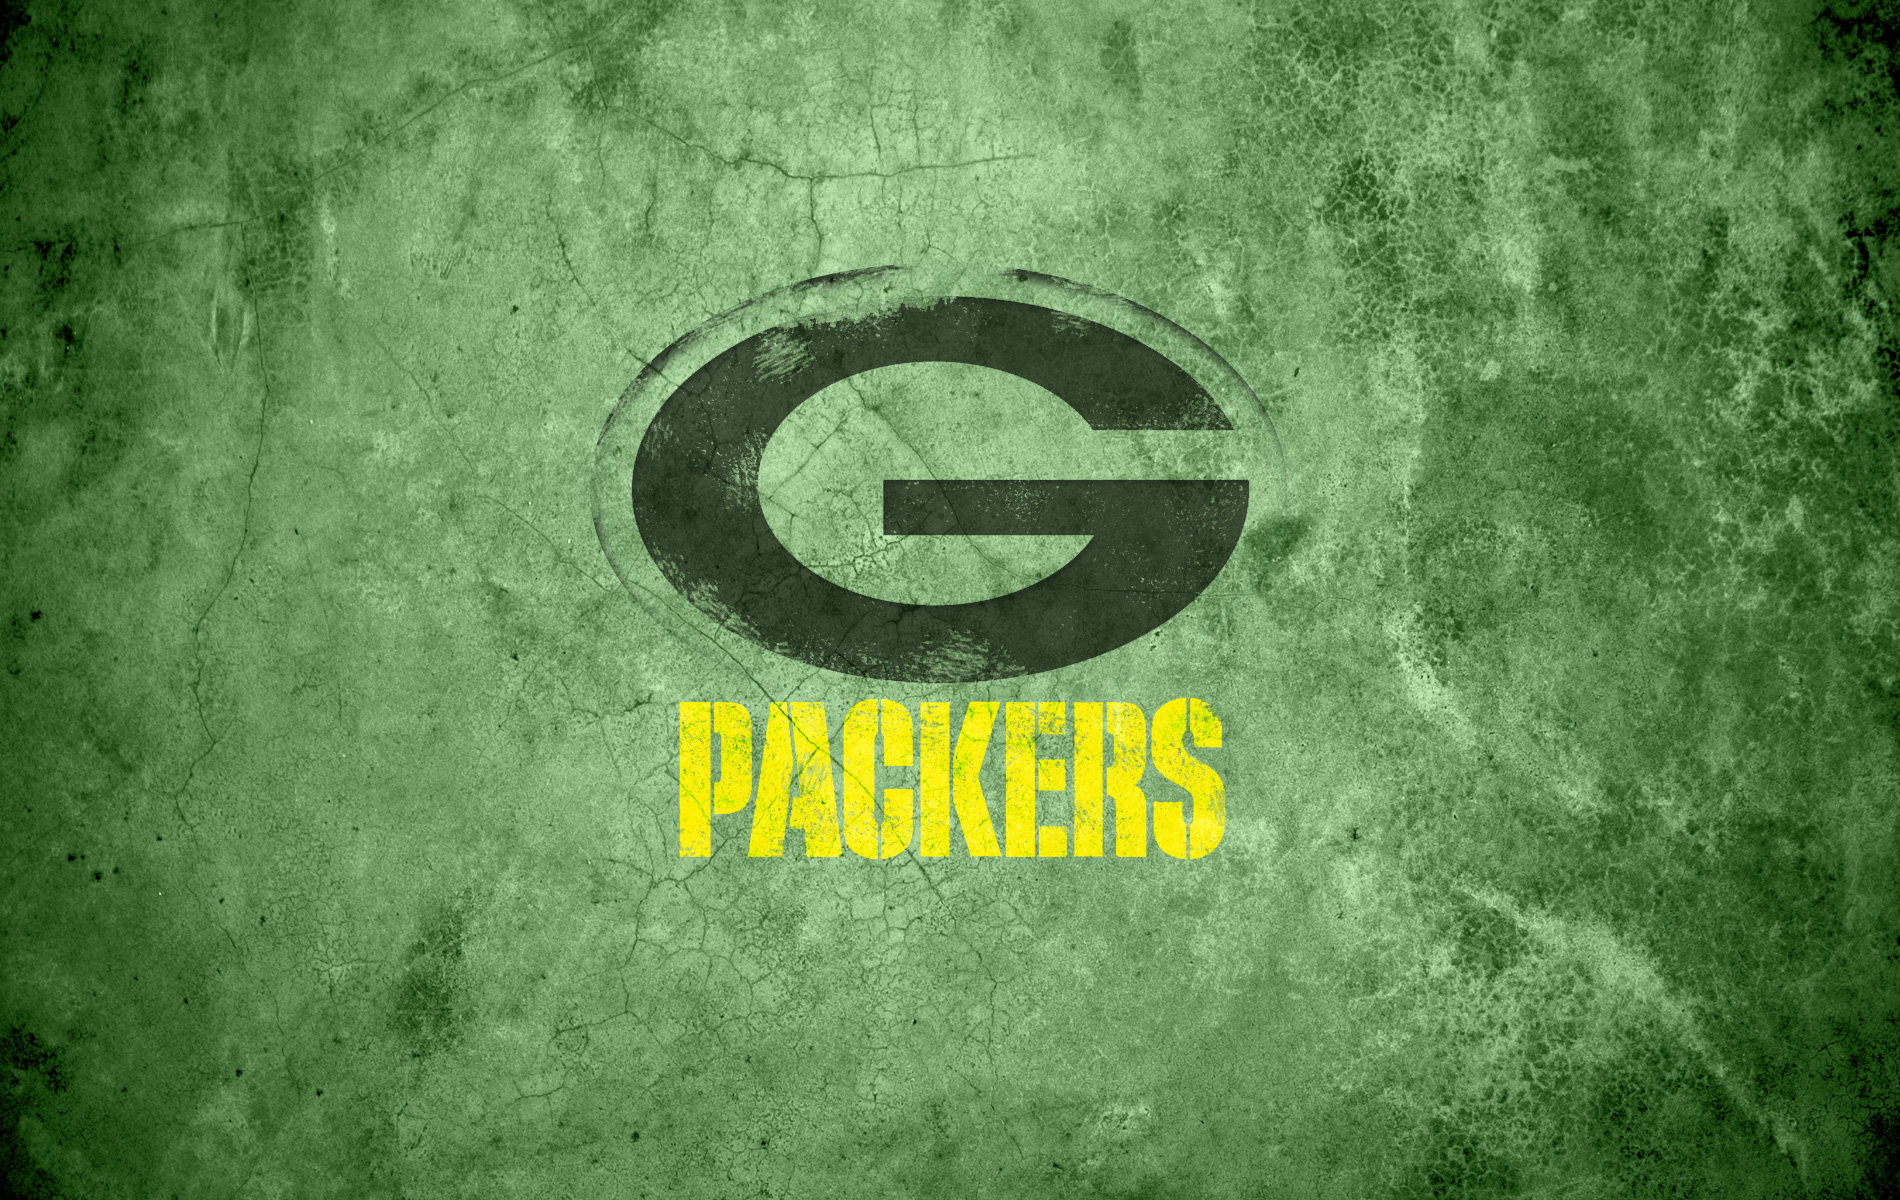 Green Bay Packers Images Packers Hd Wallpaper And